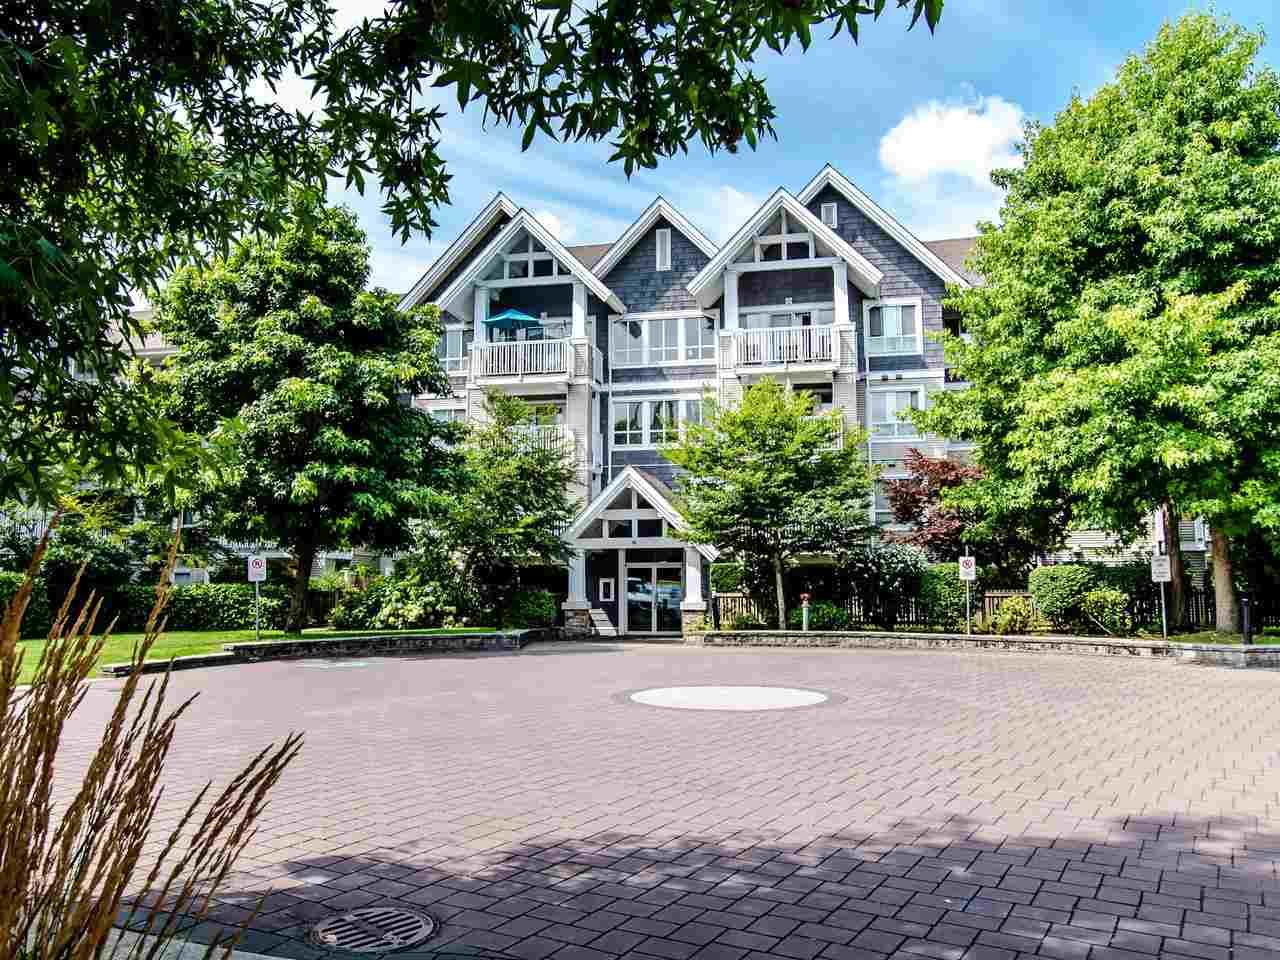 Main Photo: 415 20750 DUNCAN WAY in Langley: Langley City Condo for sale : MLS®# R2485777